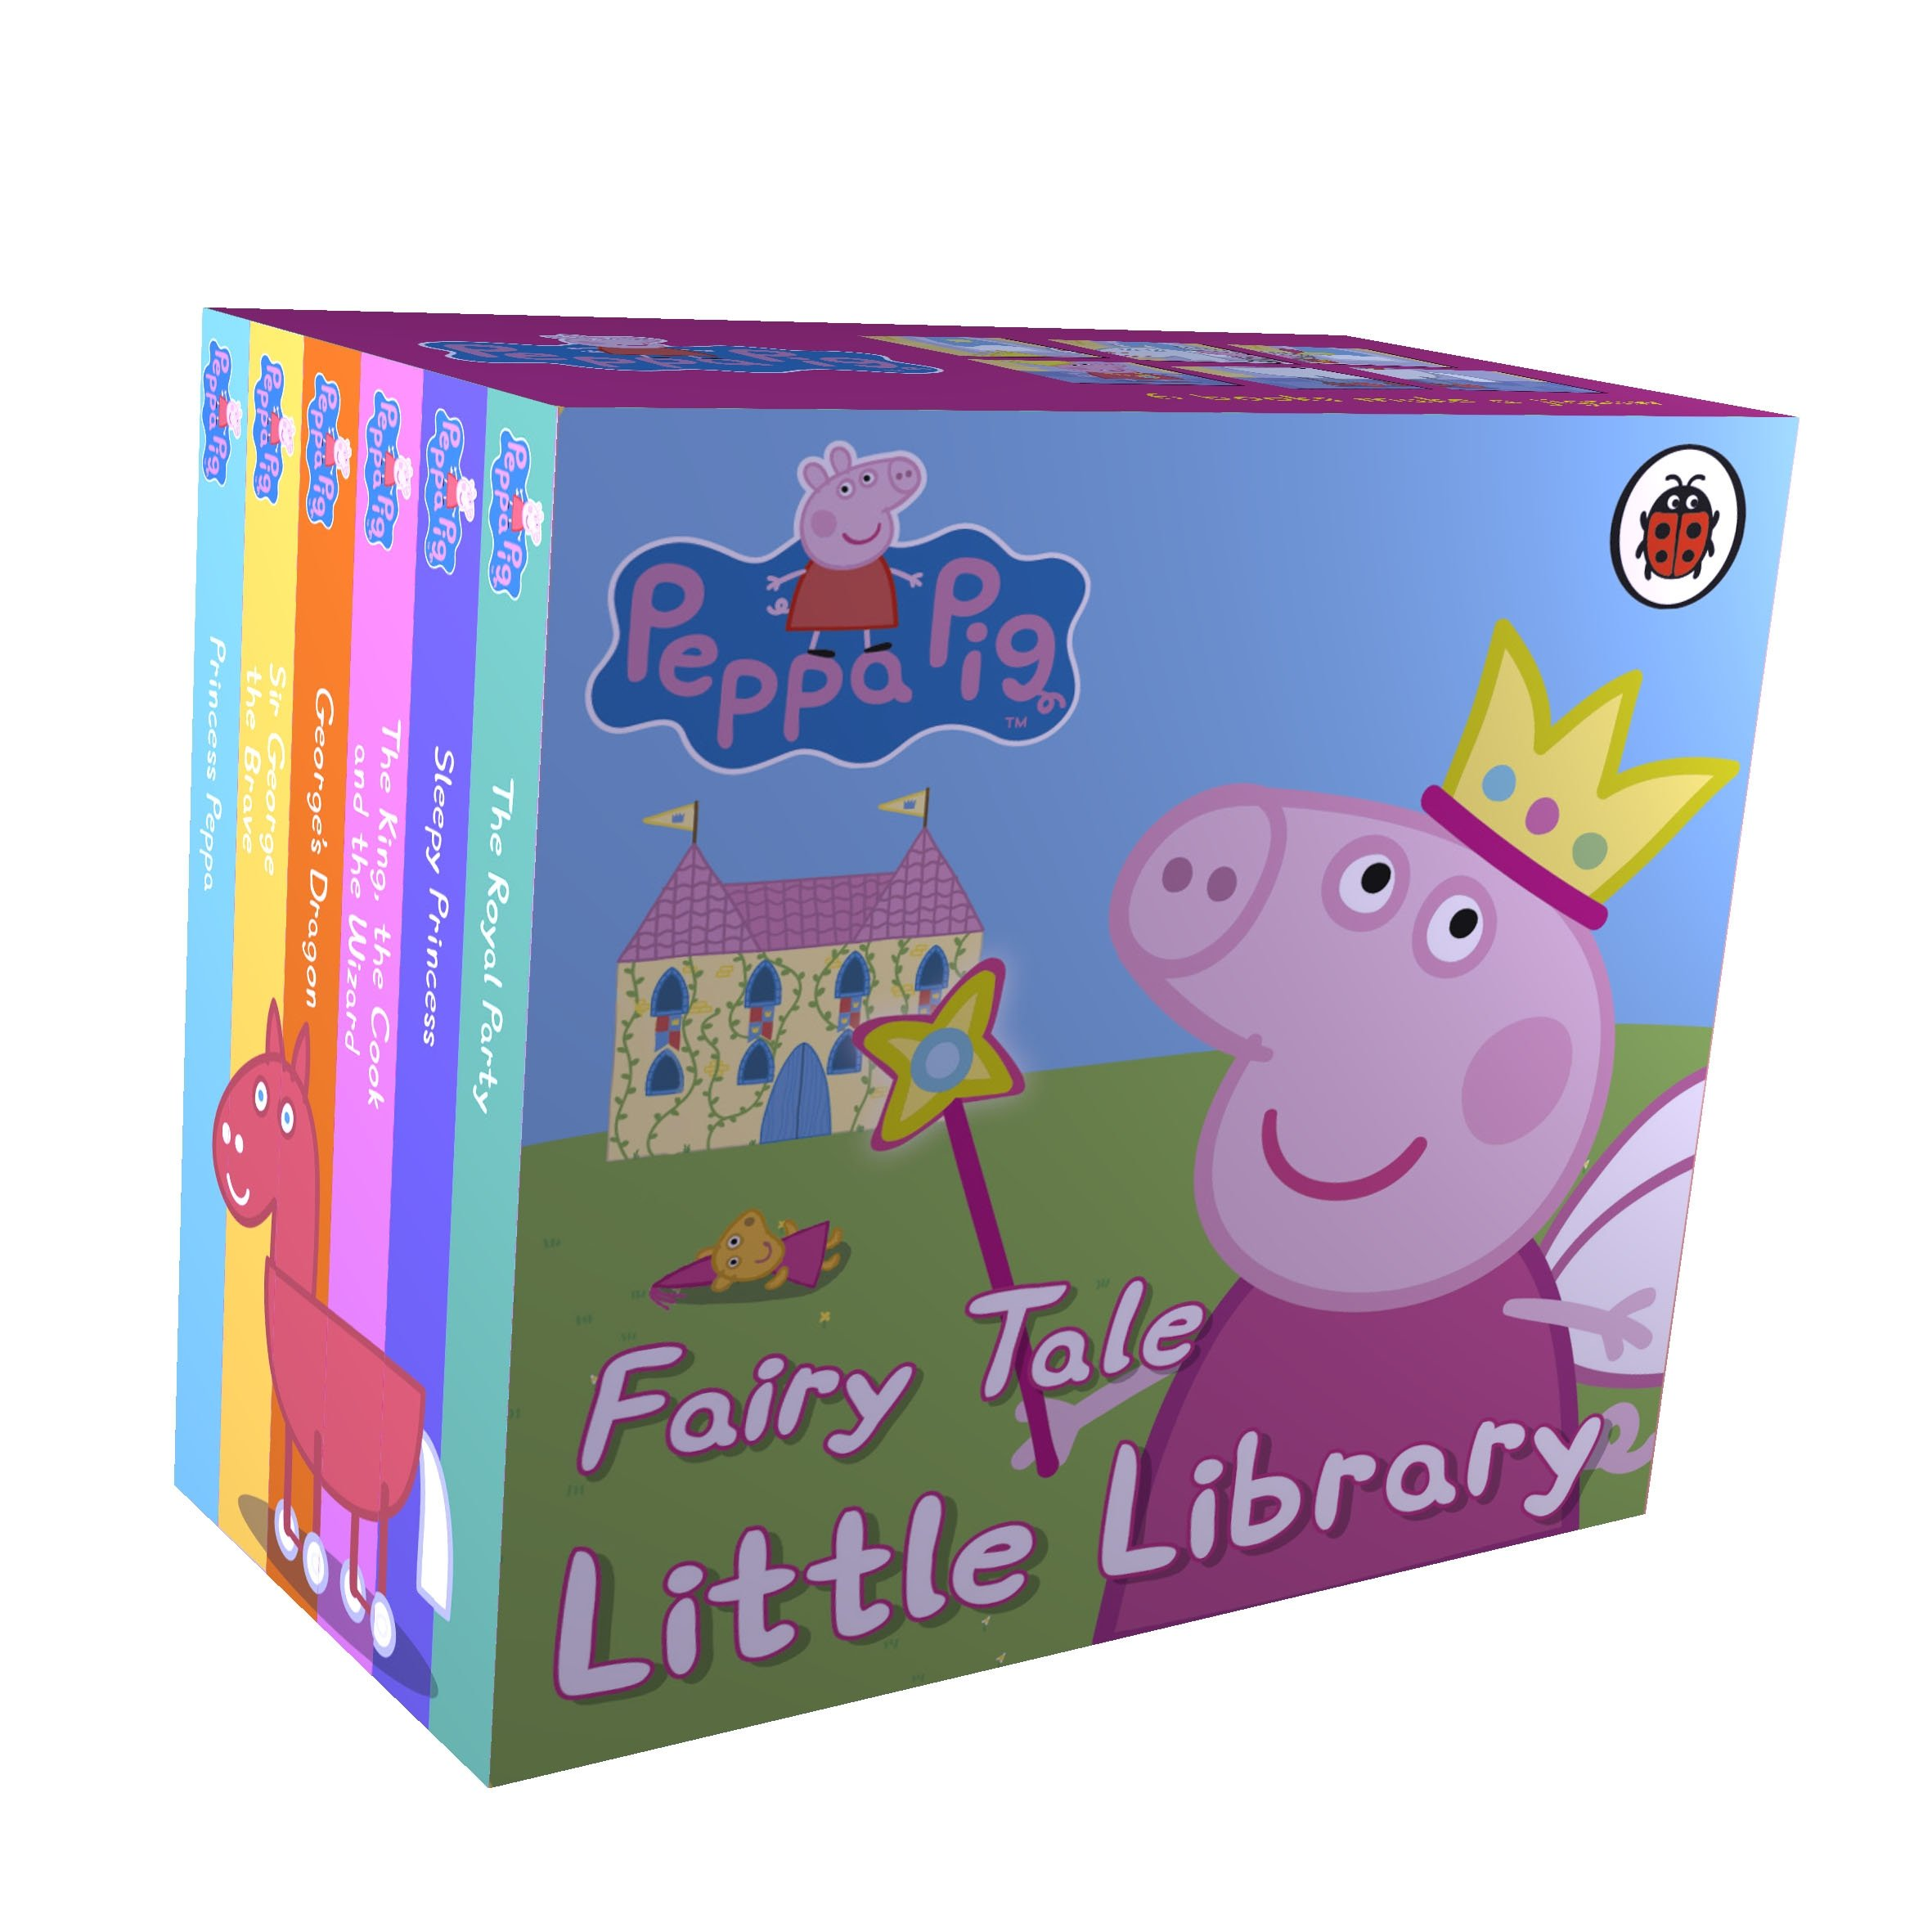 Pe peppa pig online coloring pages - Peppa Pig Fairy Tale Little Library